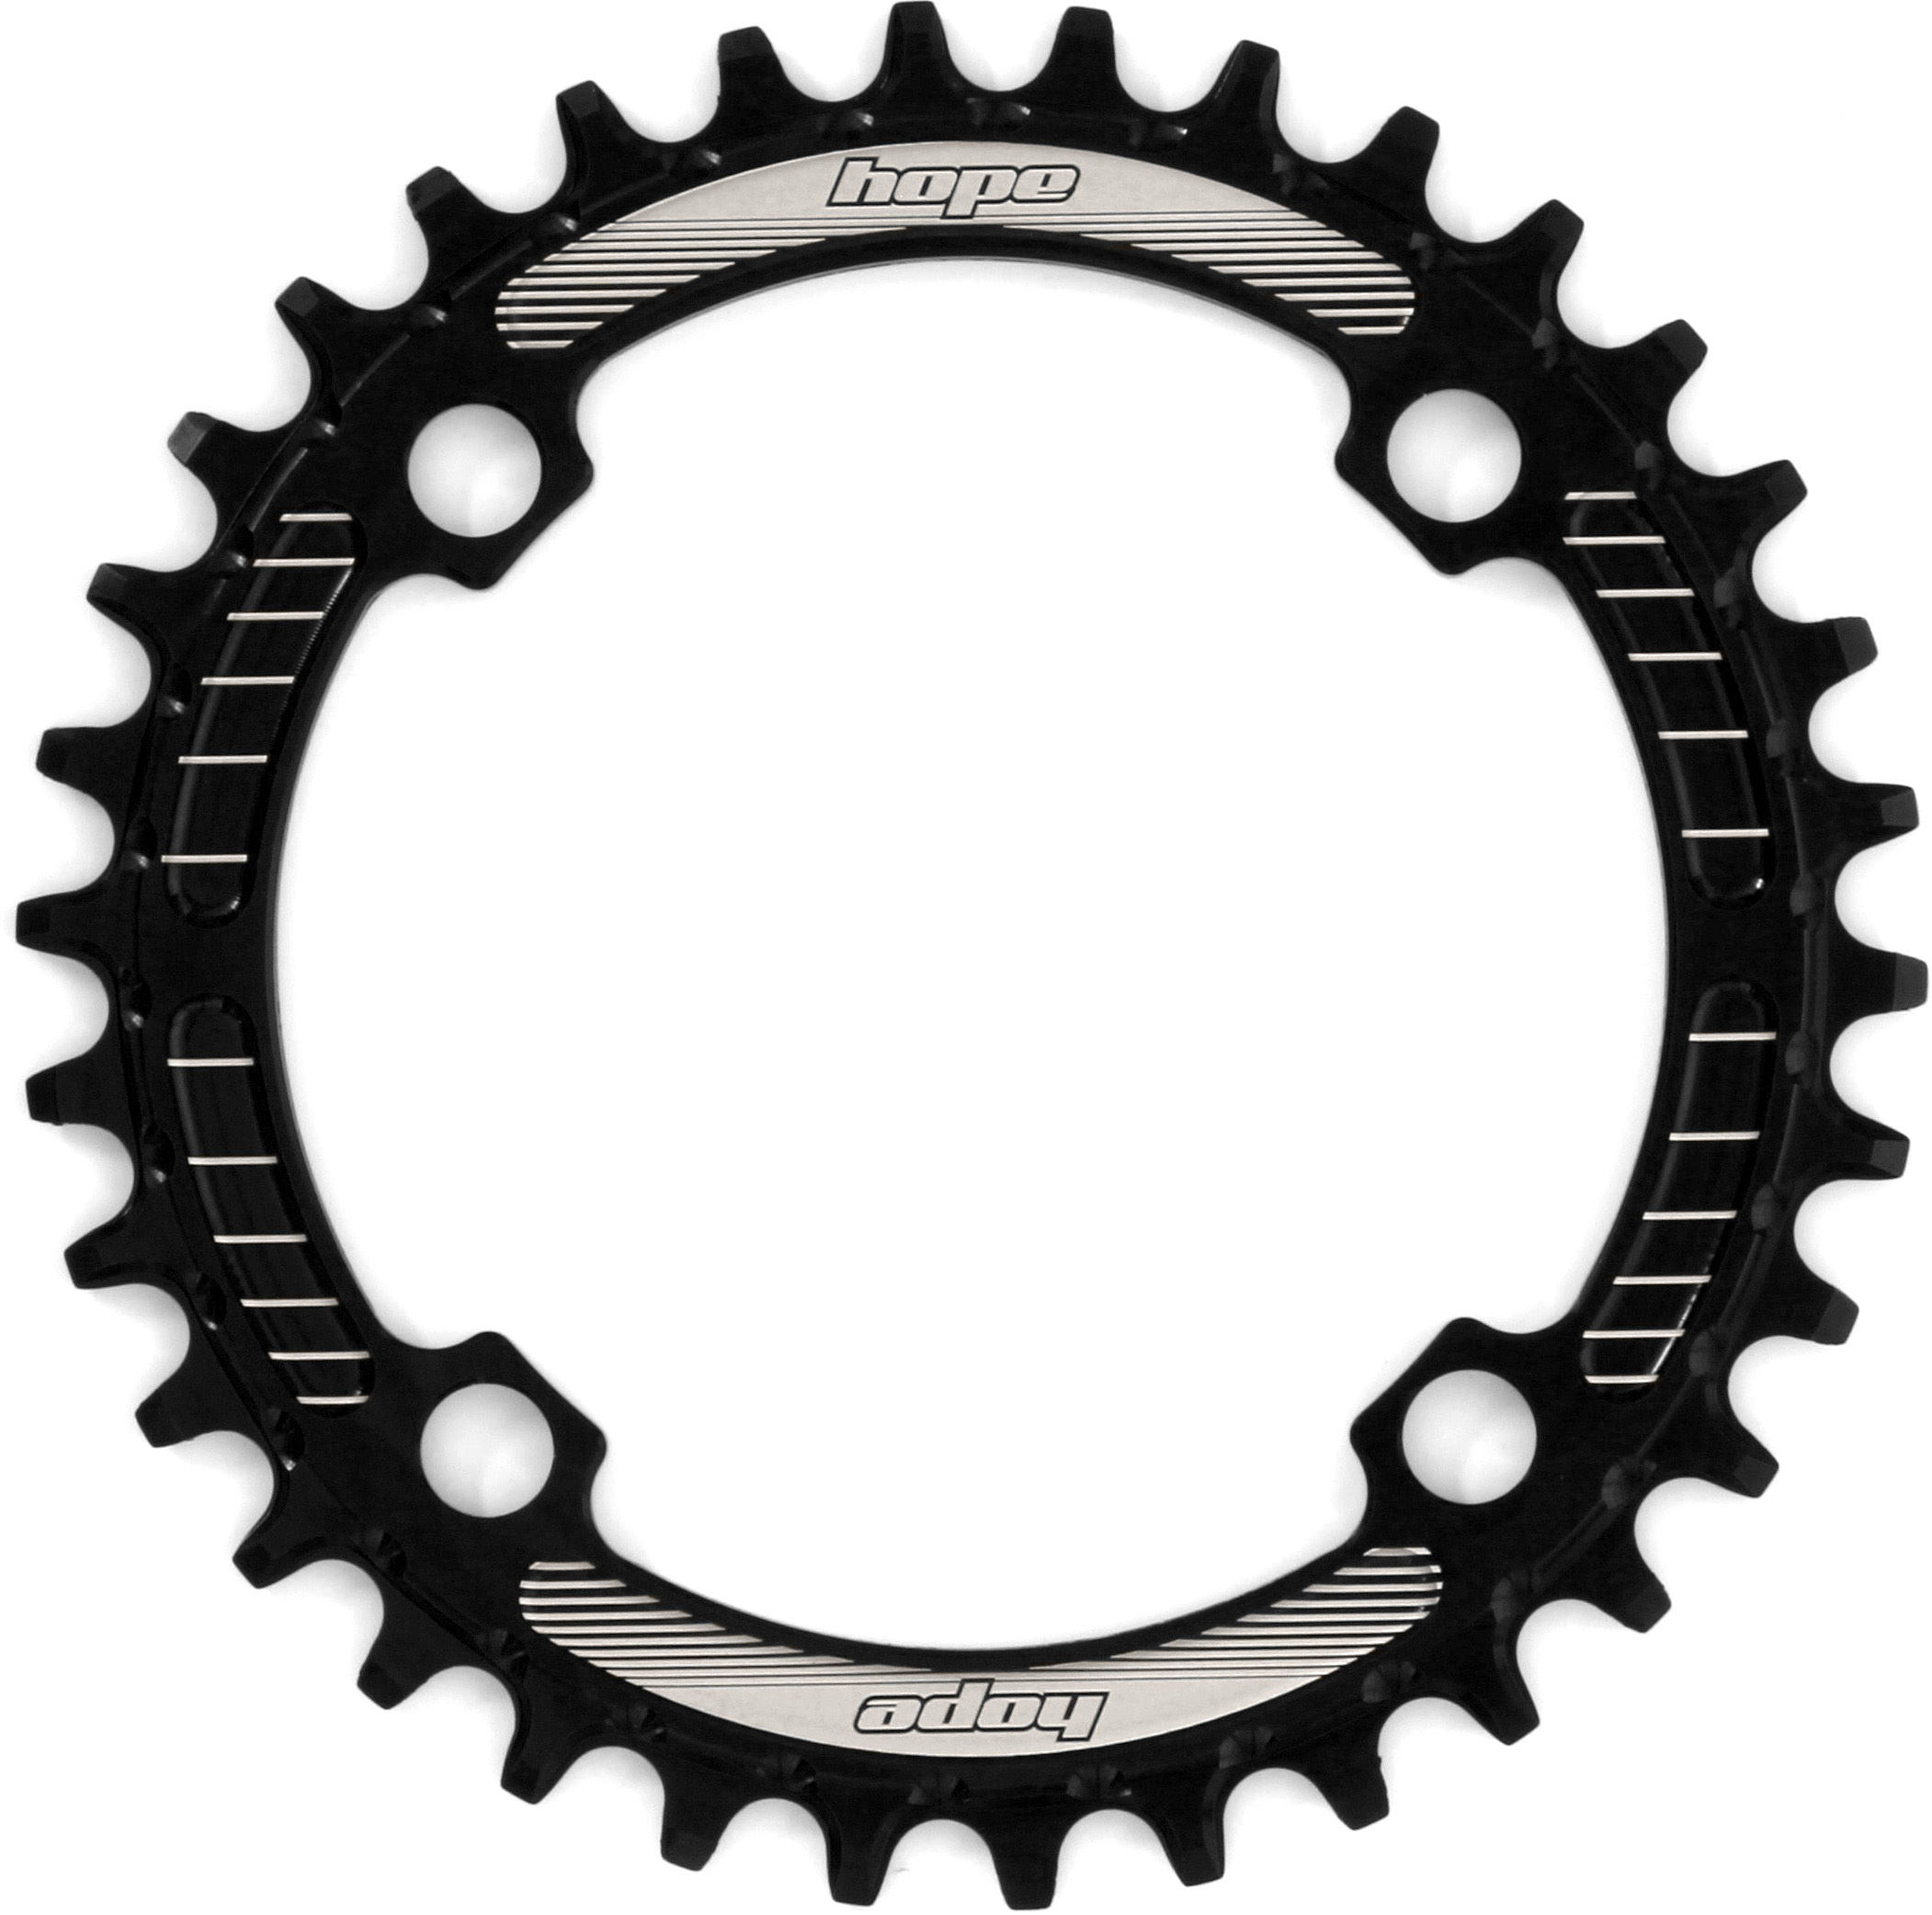 Details about  /Hope Spiderless Retainer Ring Chainring 36 tooth non boost Silver Brand New